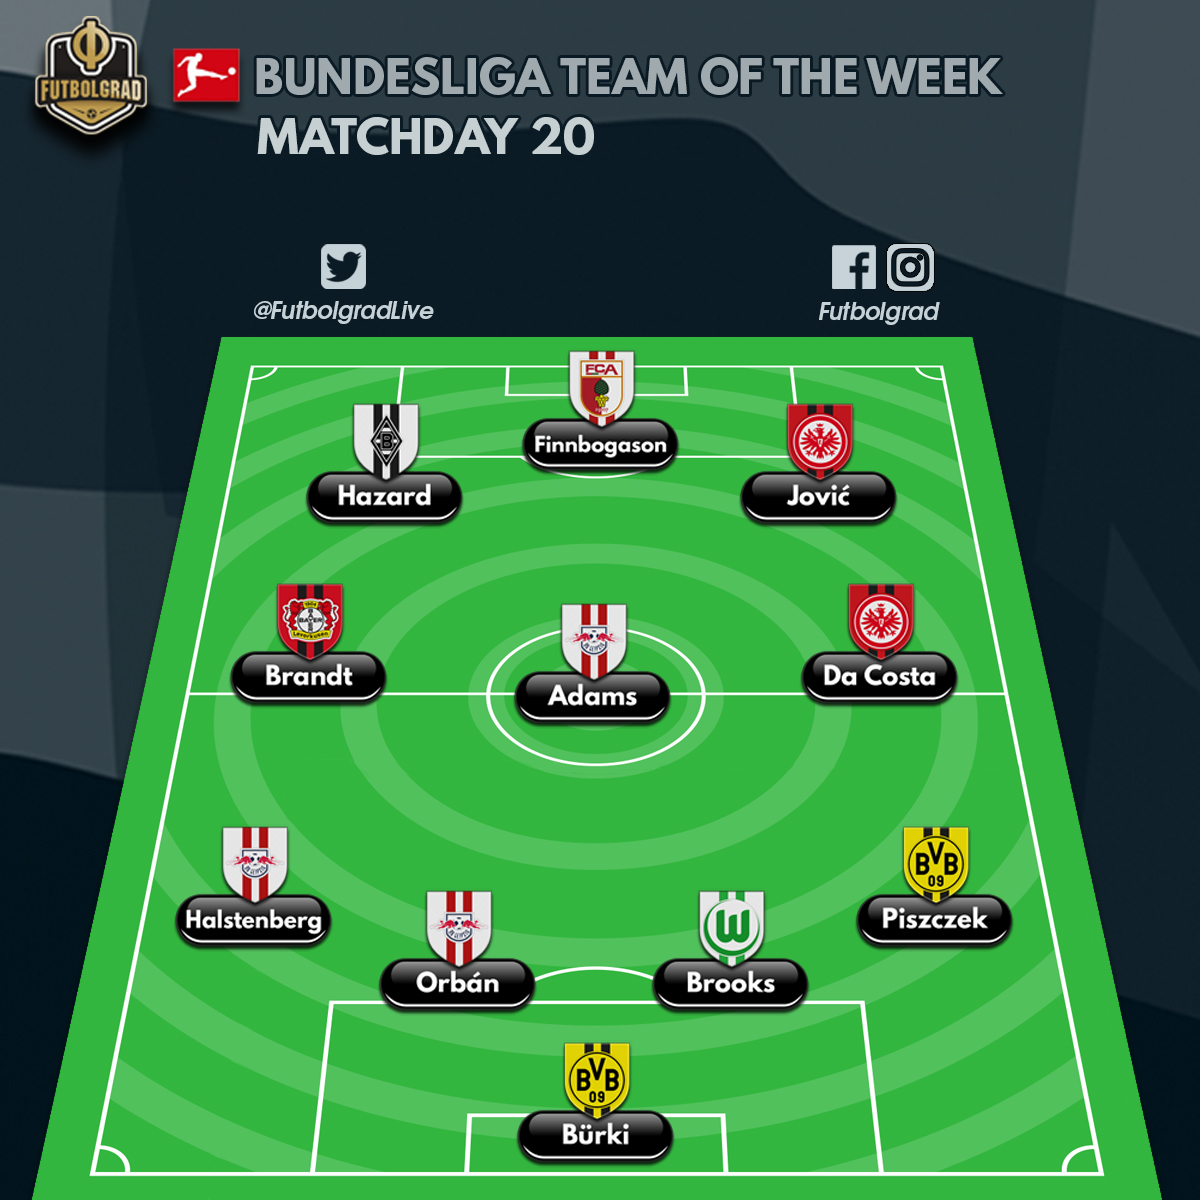 Bundesliga team of the week matchday 20